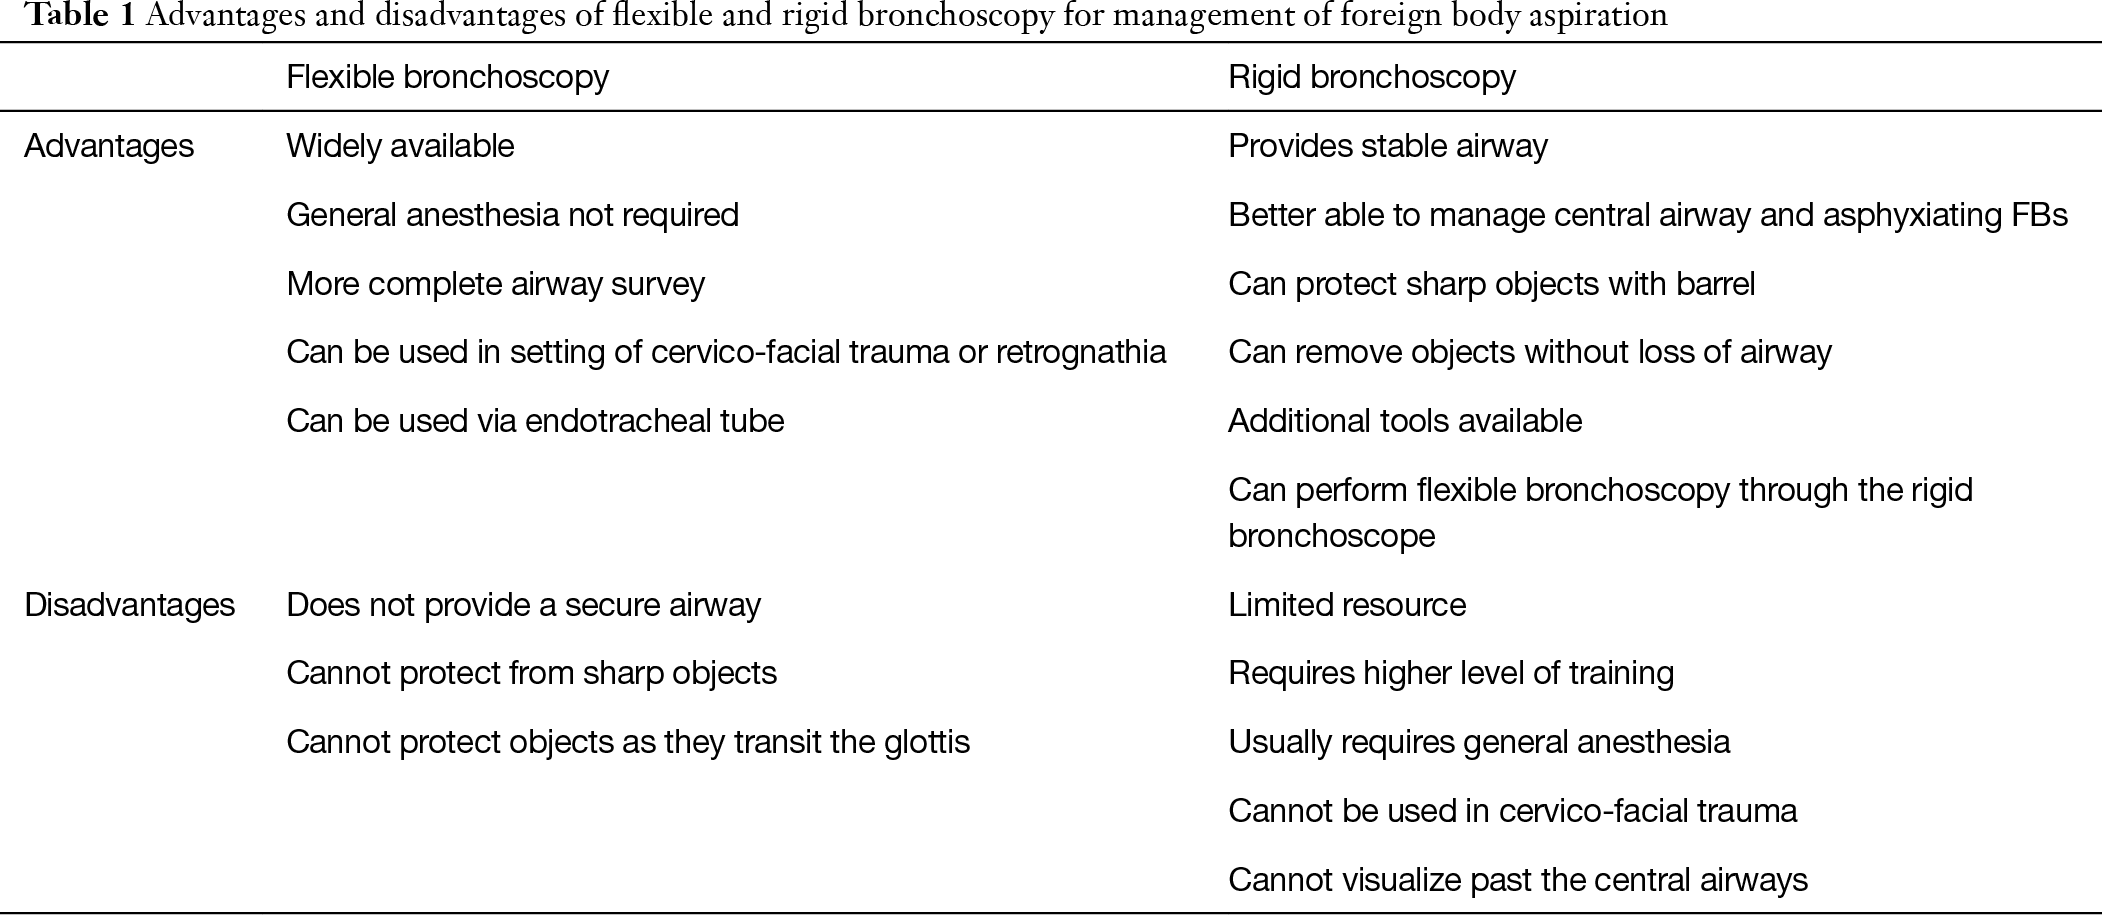 Foreign body aspiration in adult airways: therapeutic